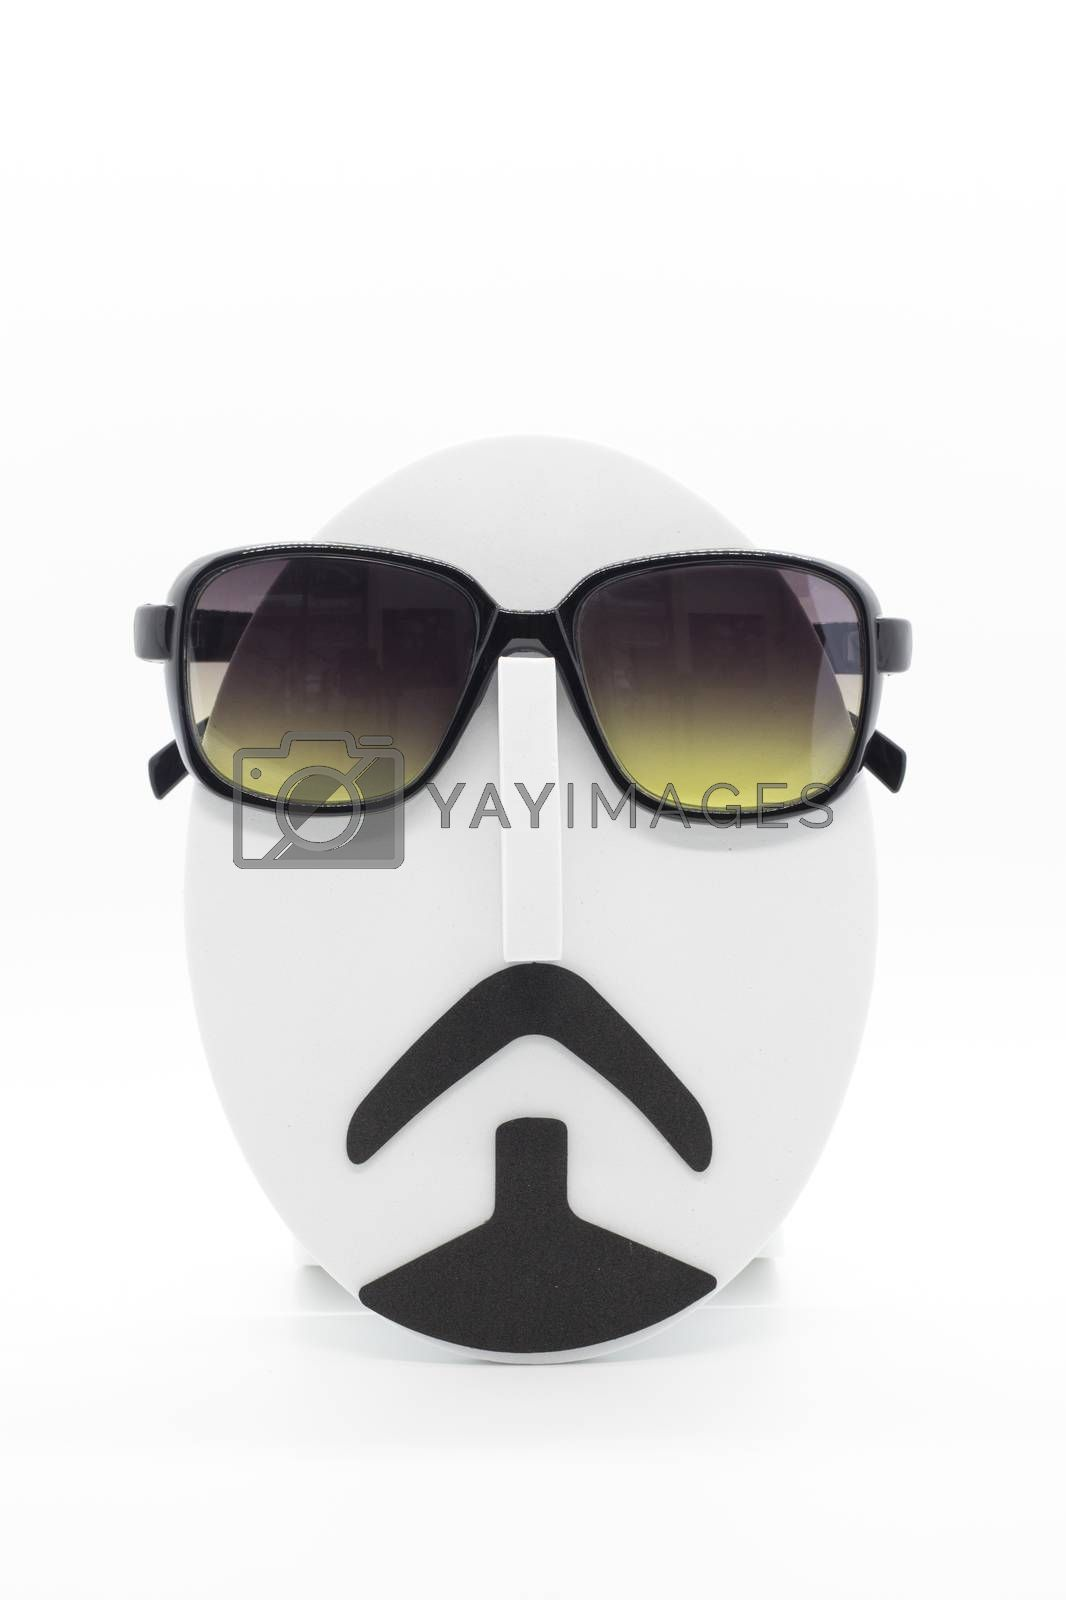 Men's fashion mannequin wearing fashionable sunglasses on white background.